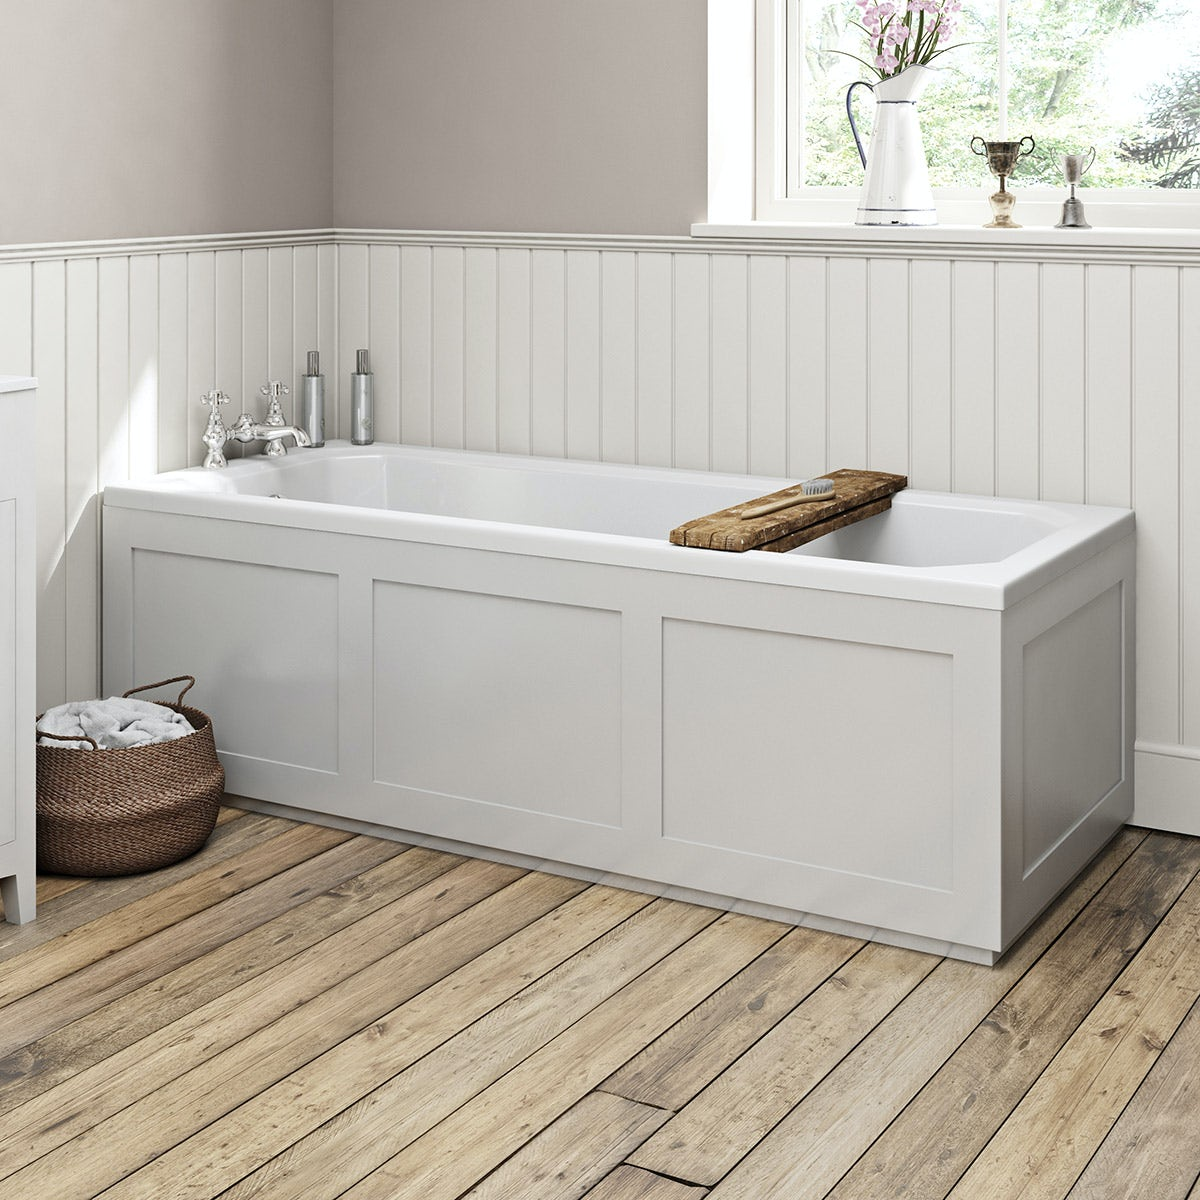 The Bath Co Camberley White Wooden Straight Bath Front Panel 1700mm